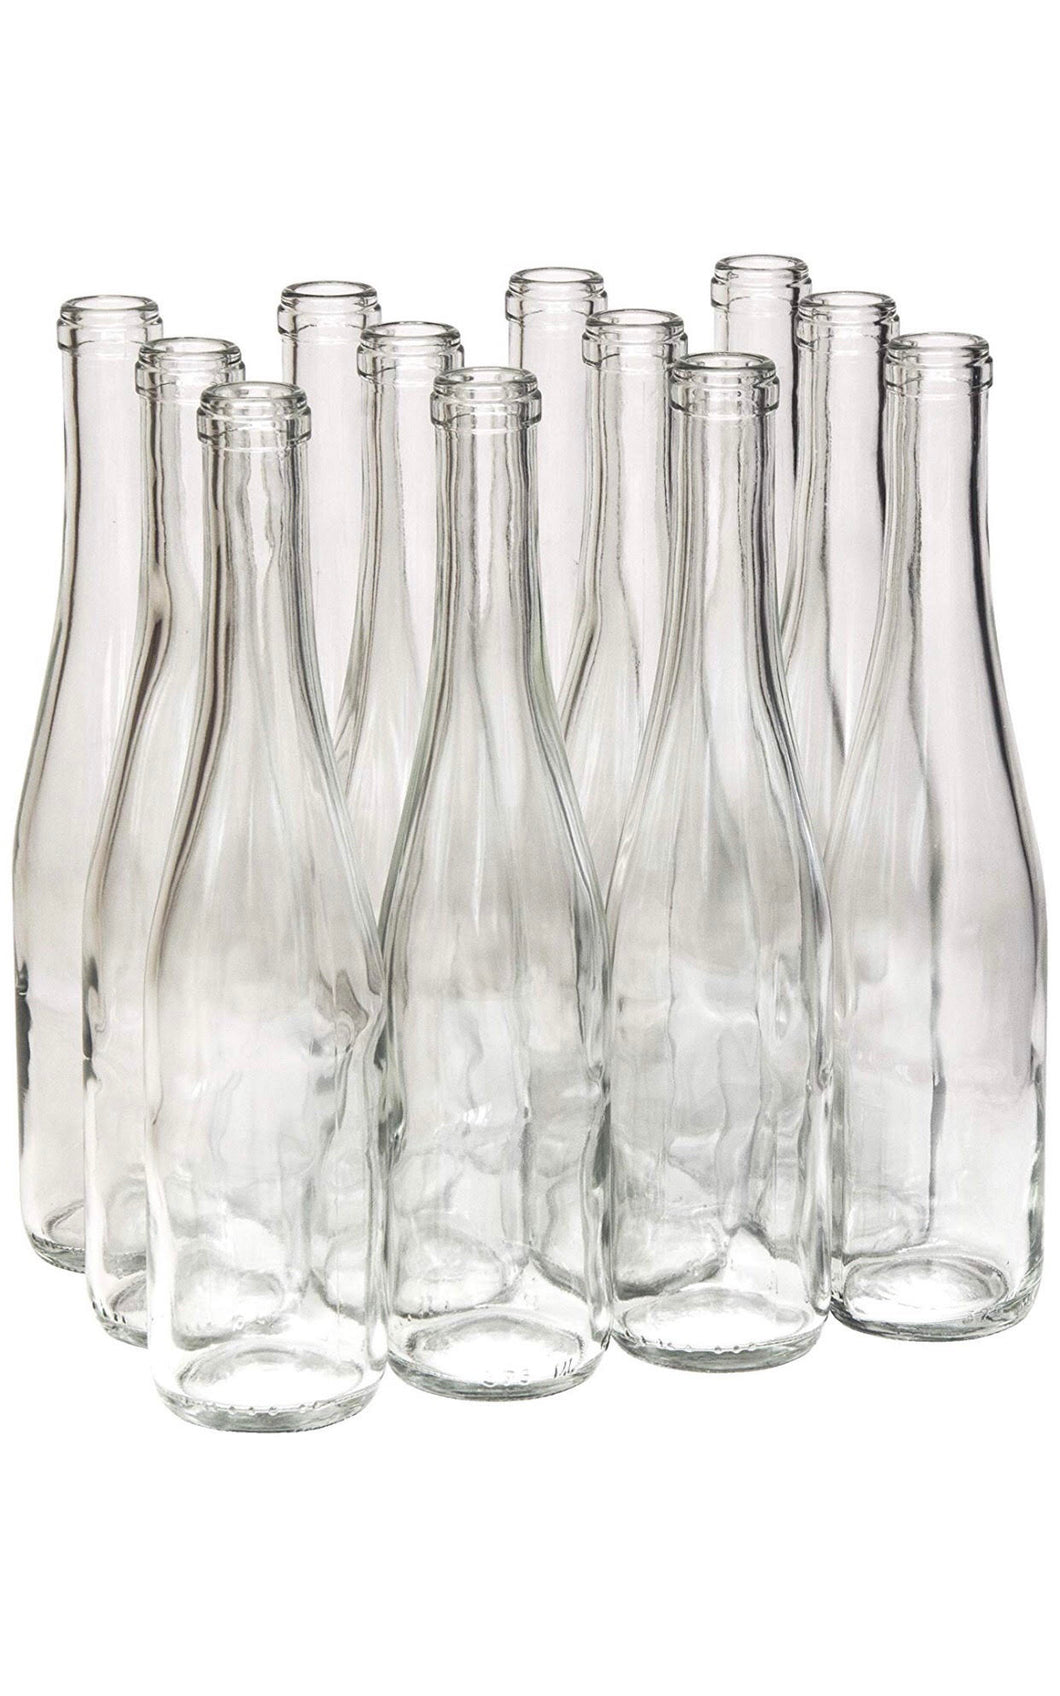 Glass Bottle Vases -  Modern Event & Wedding Rentals - Something Borrowed Minneapolis